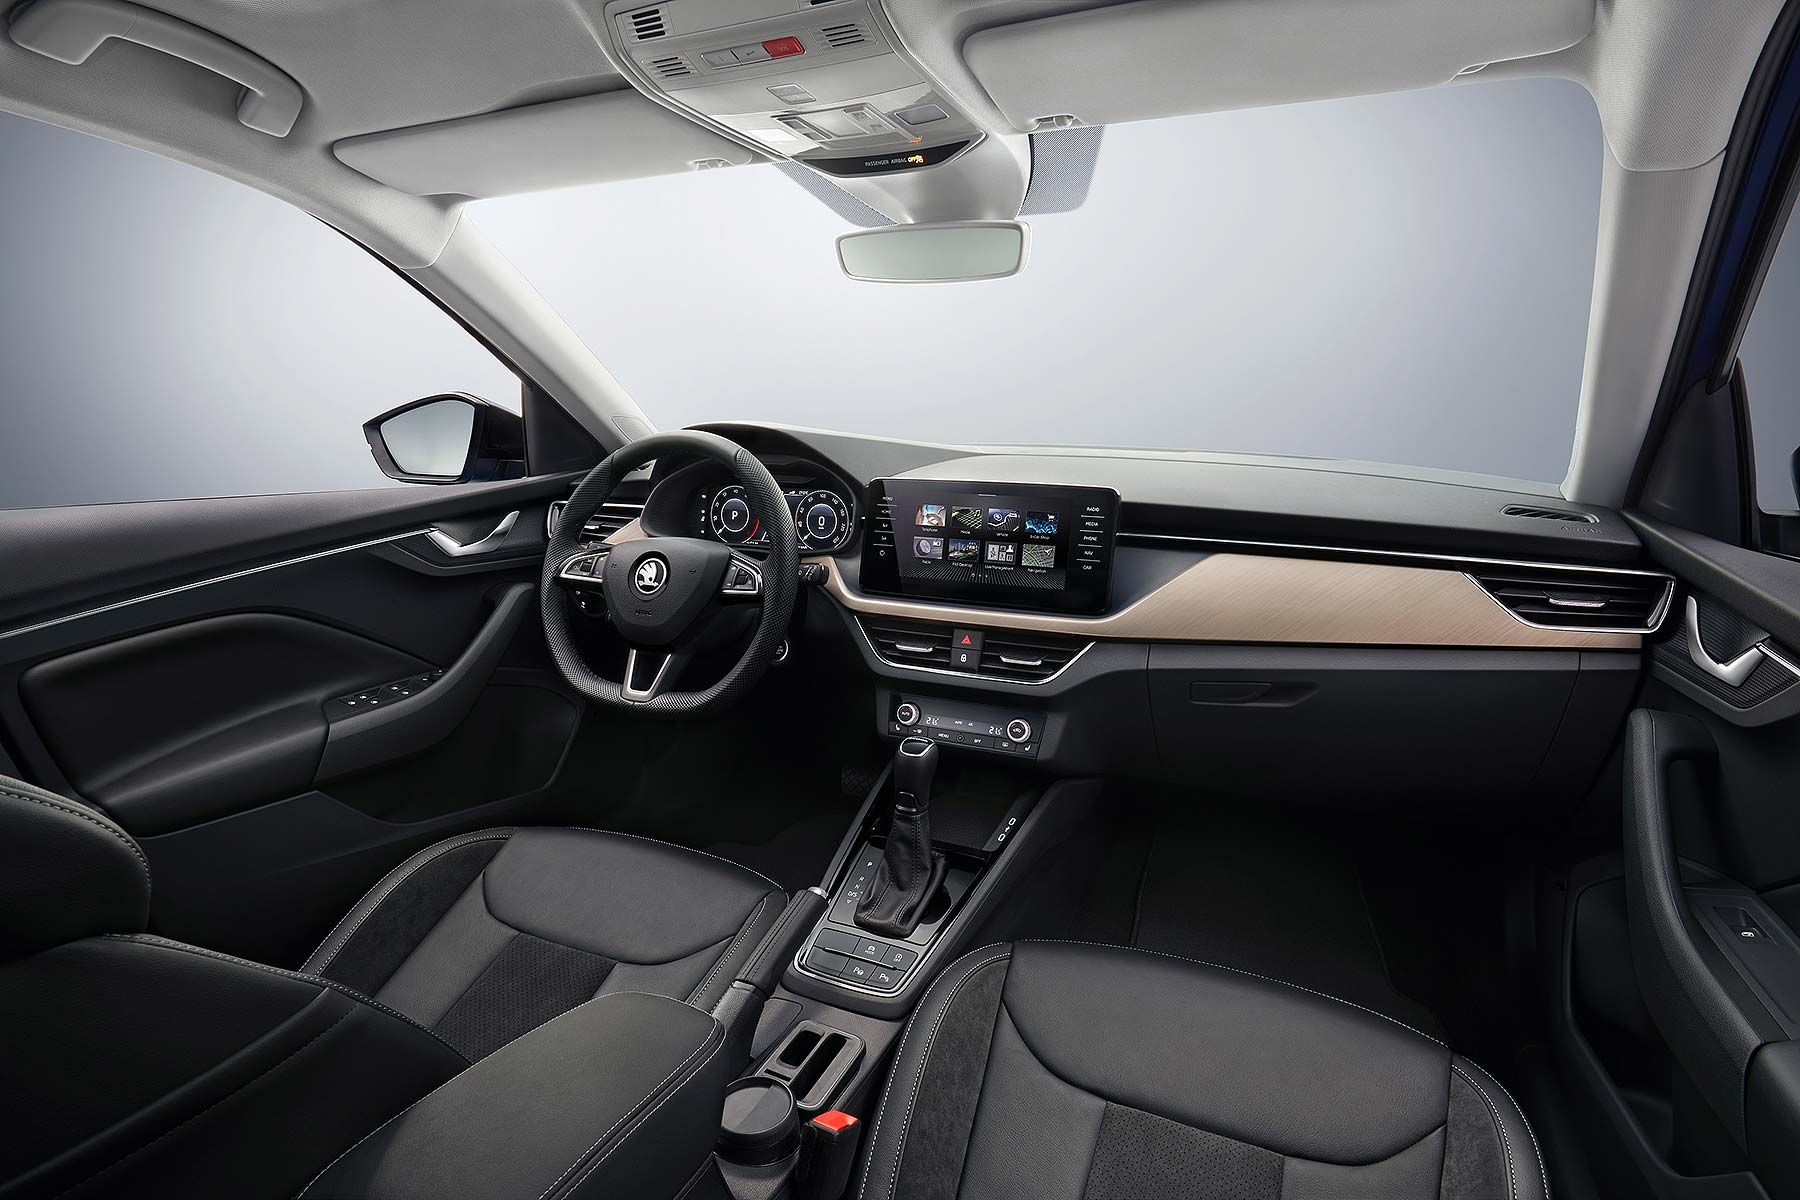 Skoda Scala Interior Revealed Ahead Of Full Debut On 6 December